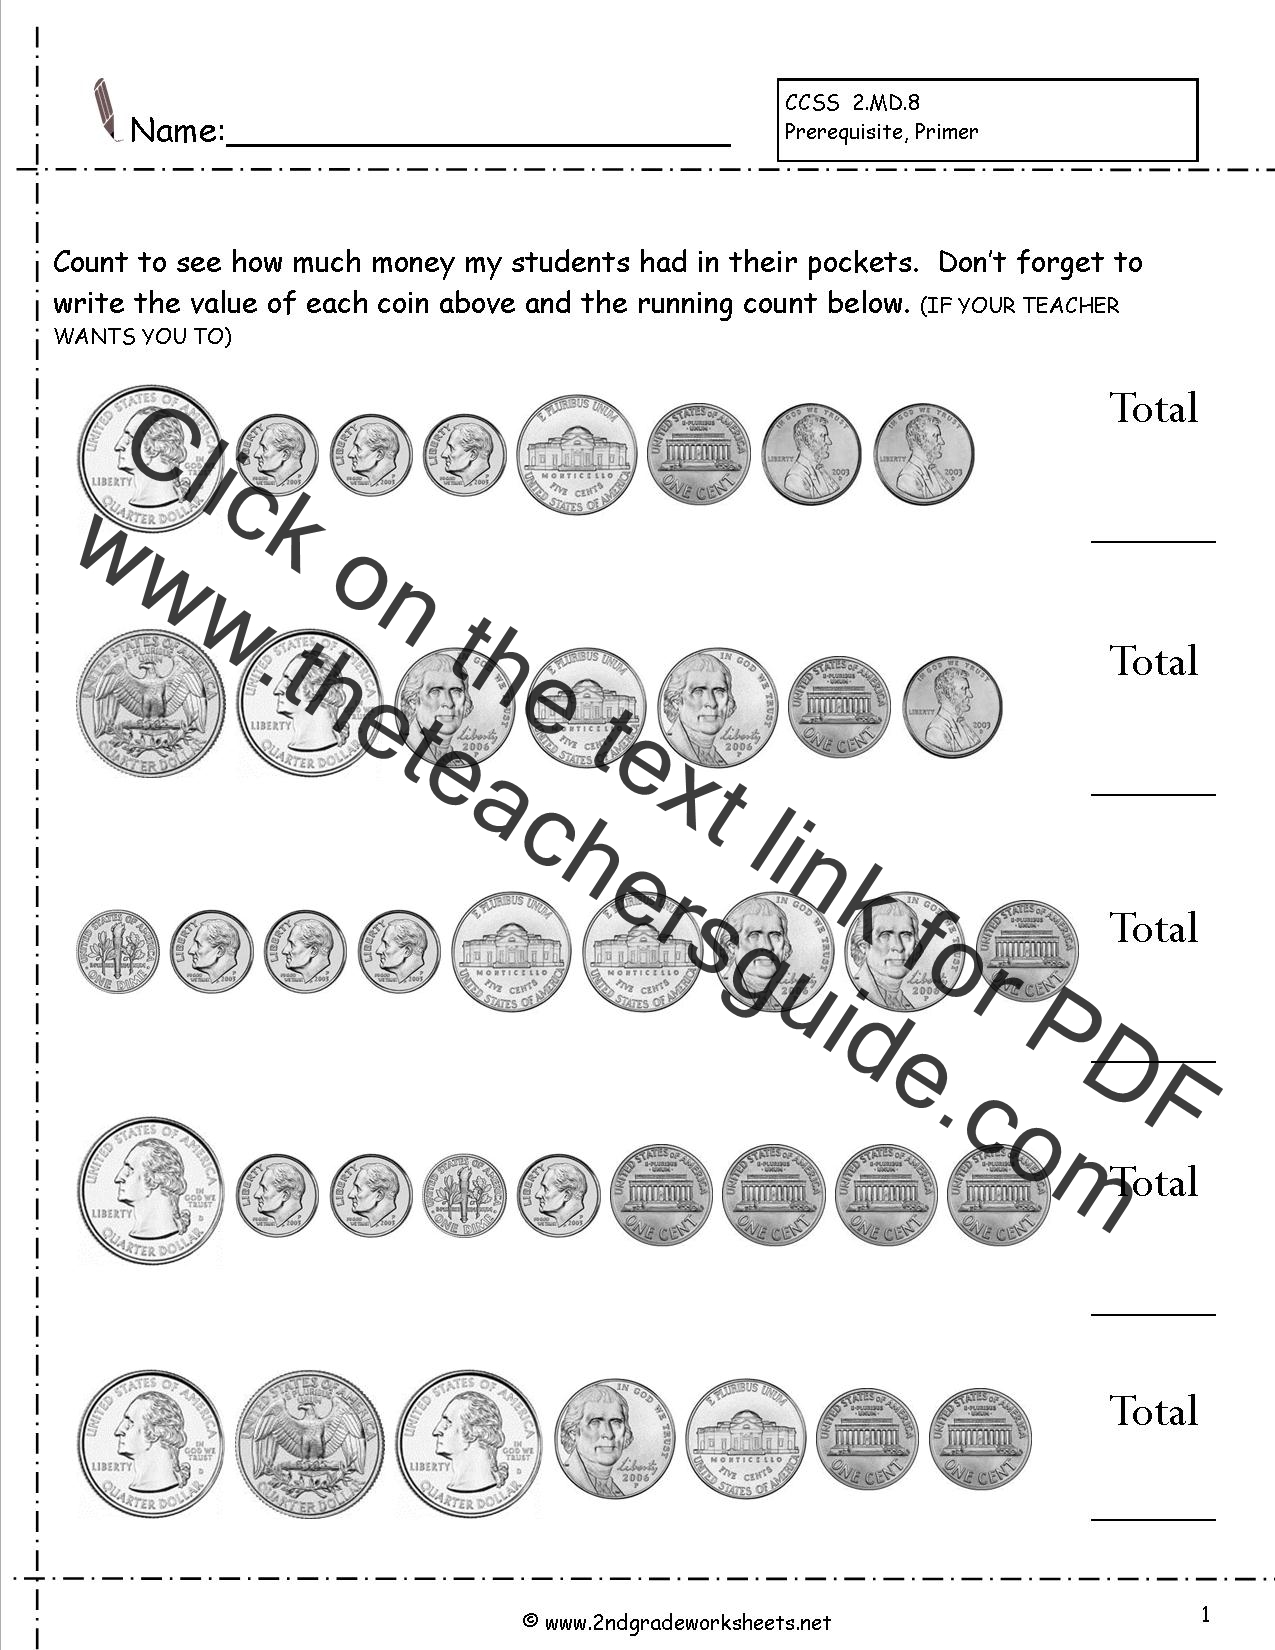 Printables Counting Coins Worksheets 2nd Grade counting coins and money worksheets printouts worksheets